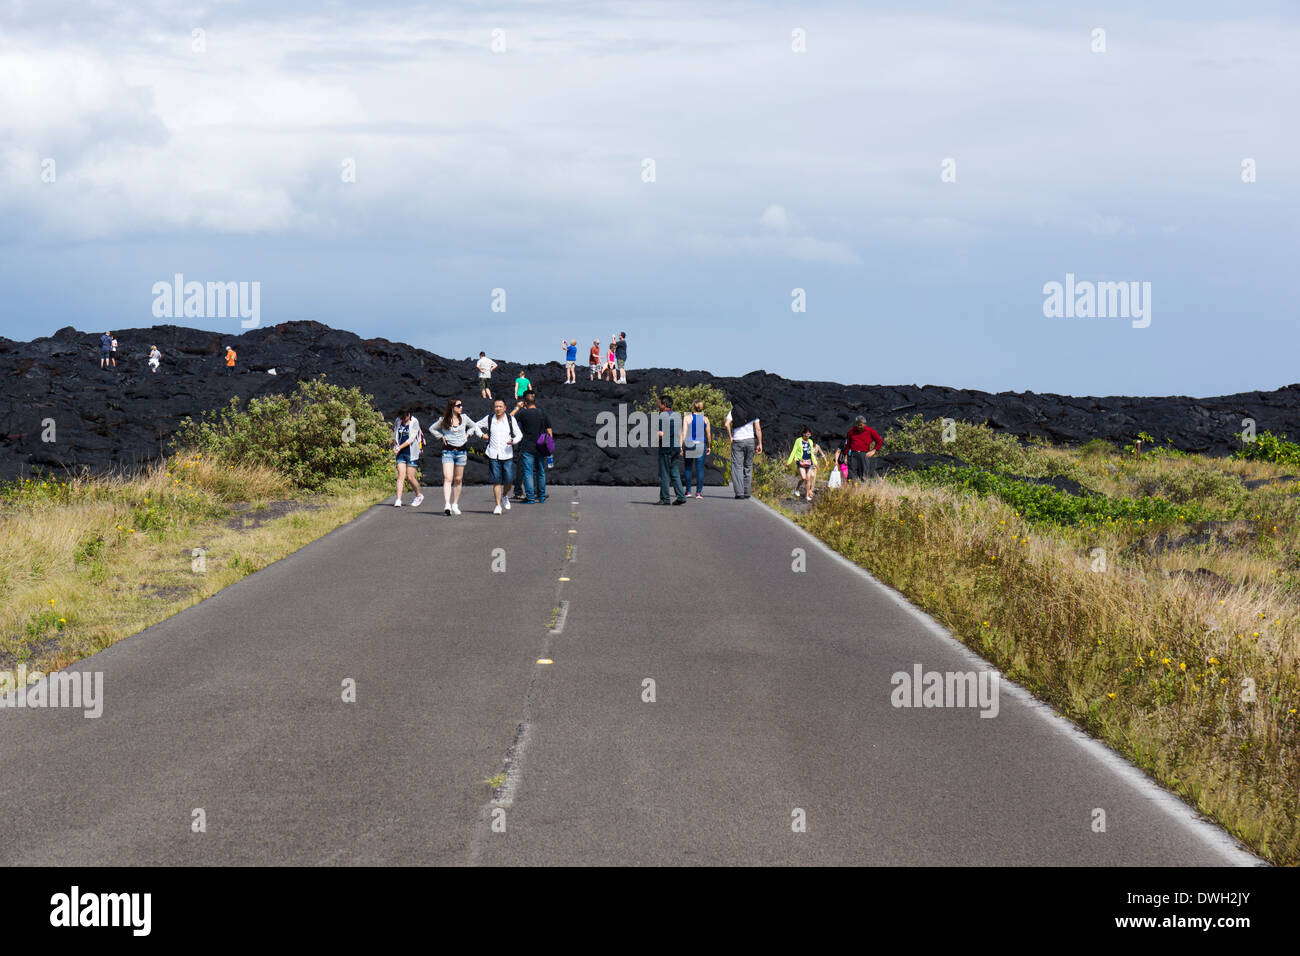 End of the Road, Chain of Craters Road, Hawai'i Volcanoes National Park, Big Island, Hawaii, USA. - Stock Image